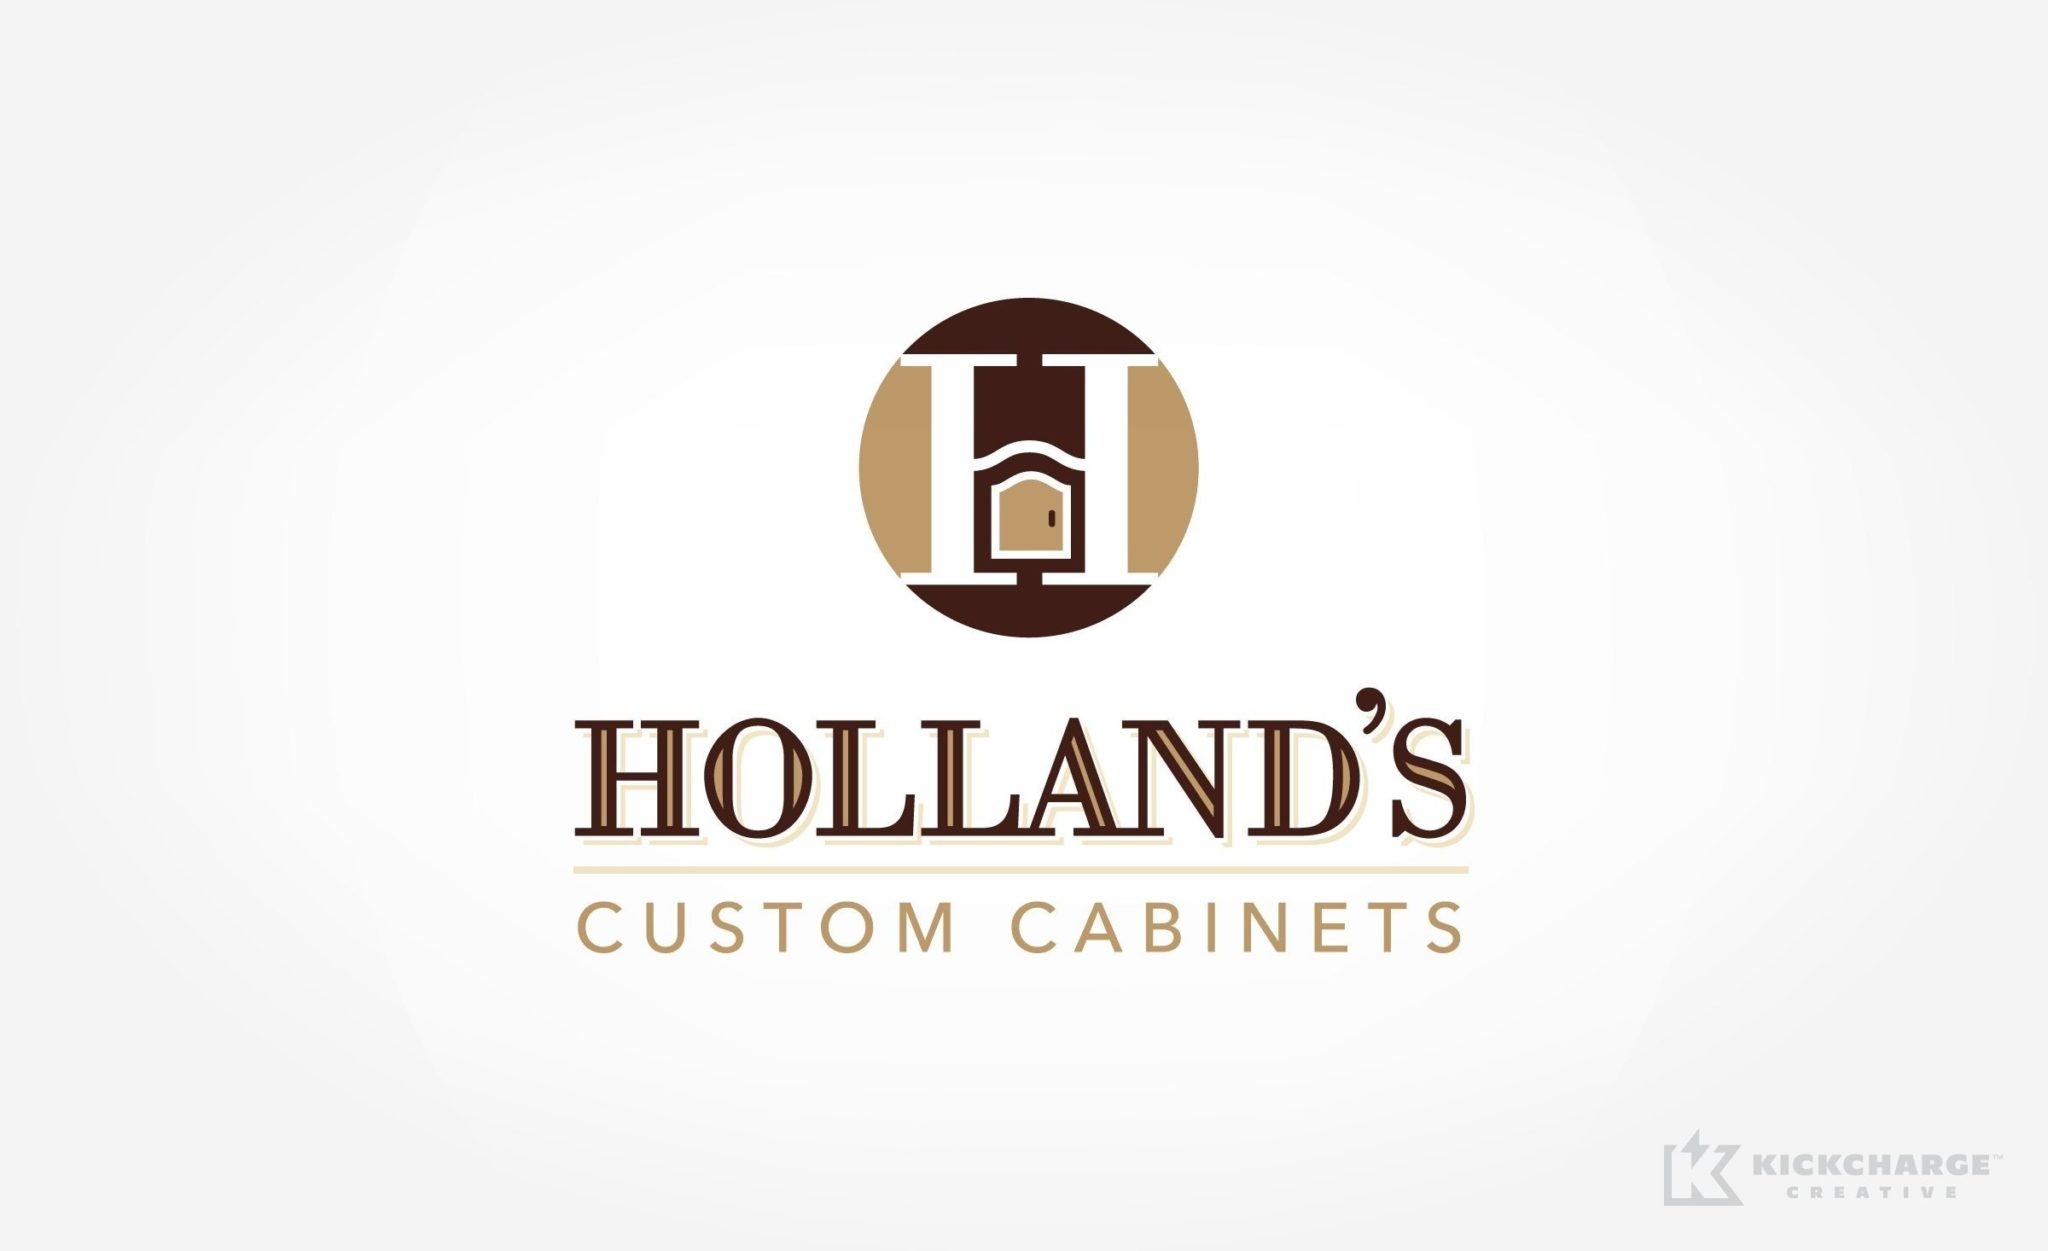 Holland's Custom Cabinets